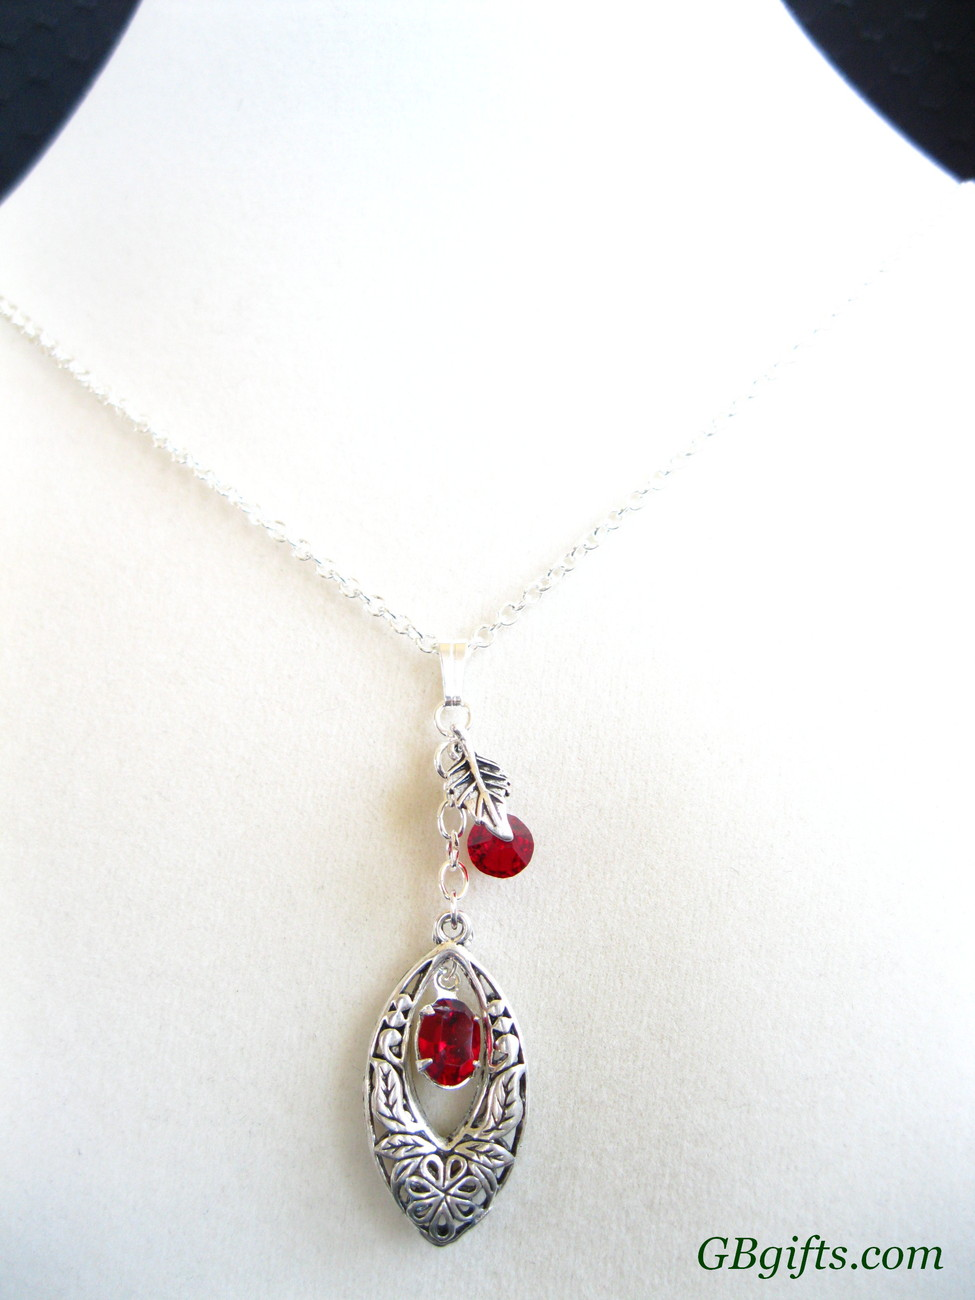 Primary image for Swarovski crystal necklace #NS2500001